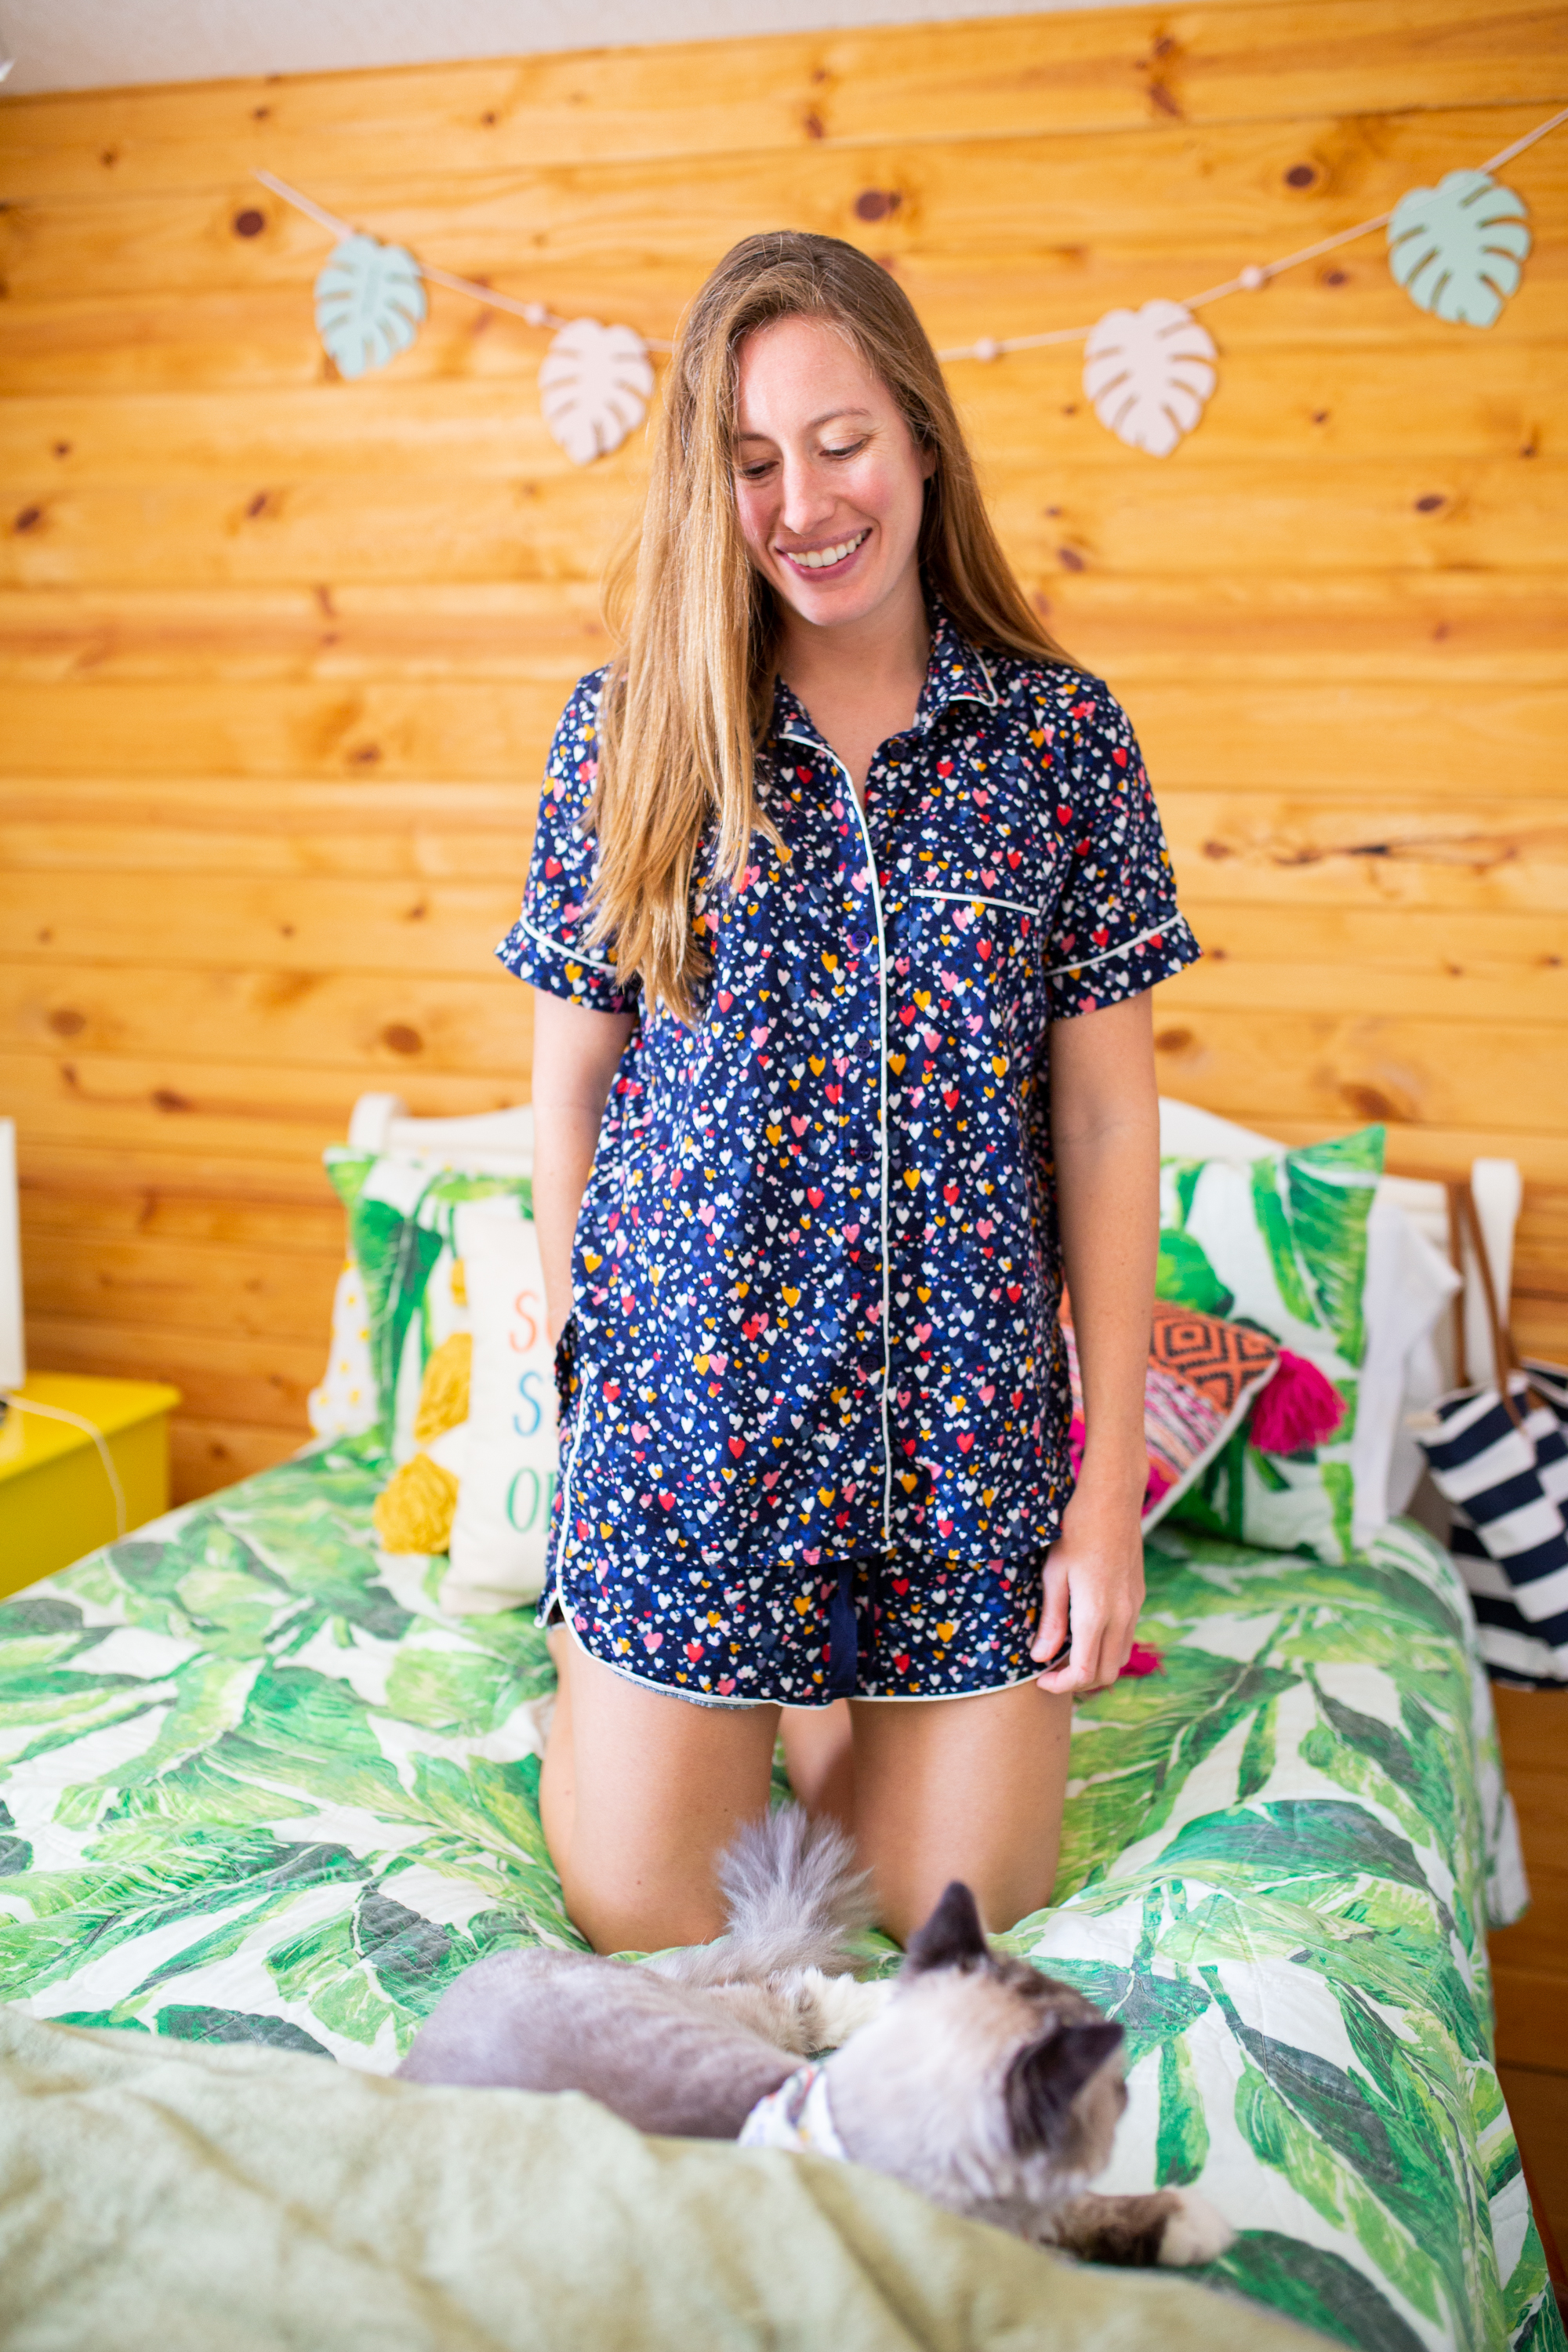 Cozy Matching Pajama Sets / Working from Home / What to Wear At Home / Loungewear - Sunshine Style, A Florida Fashion blog by Katie